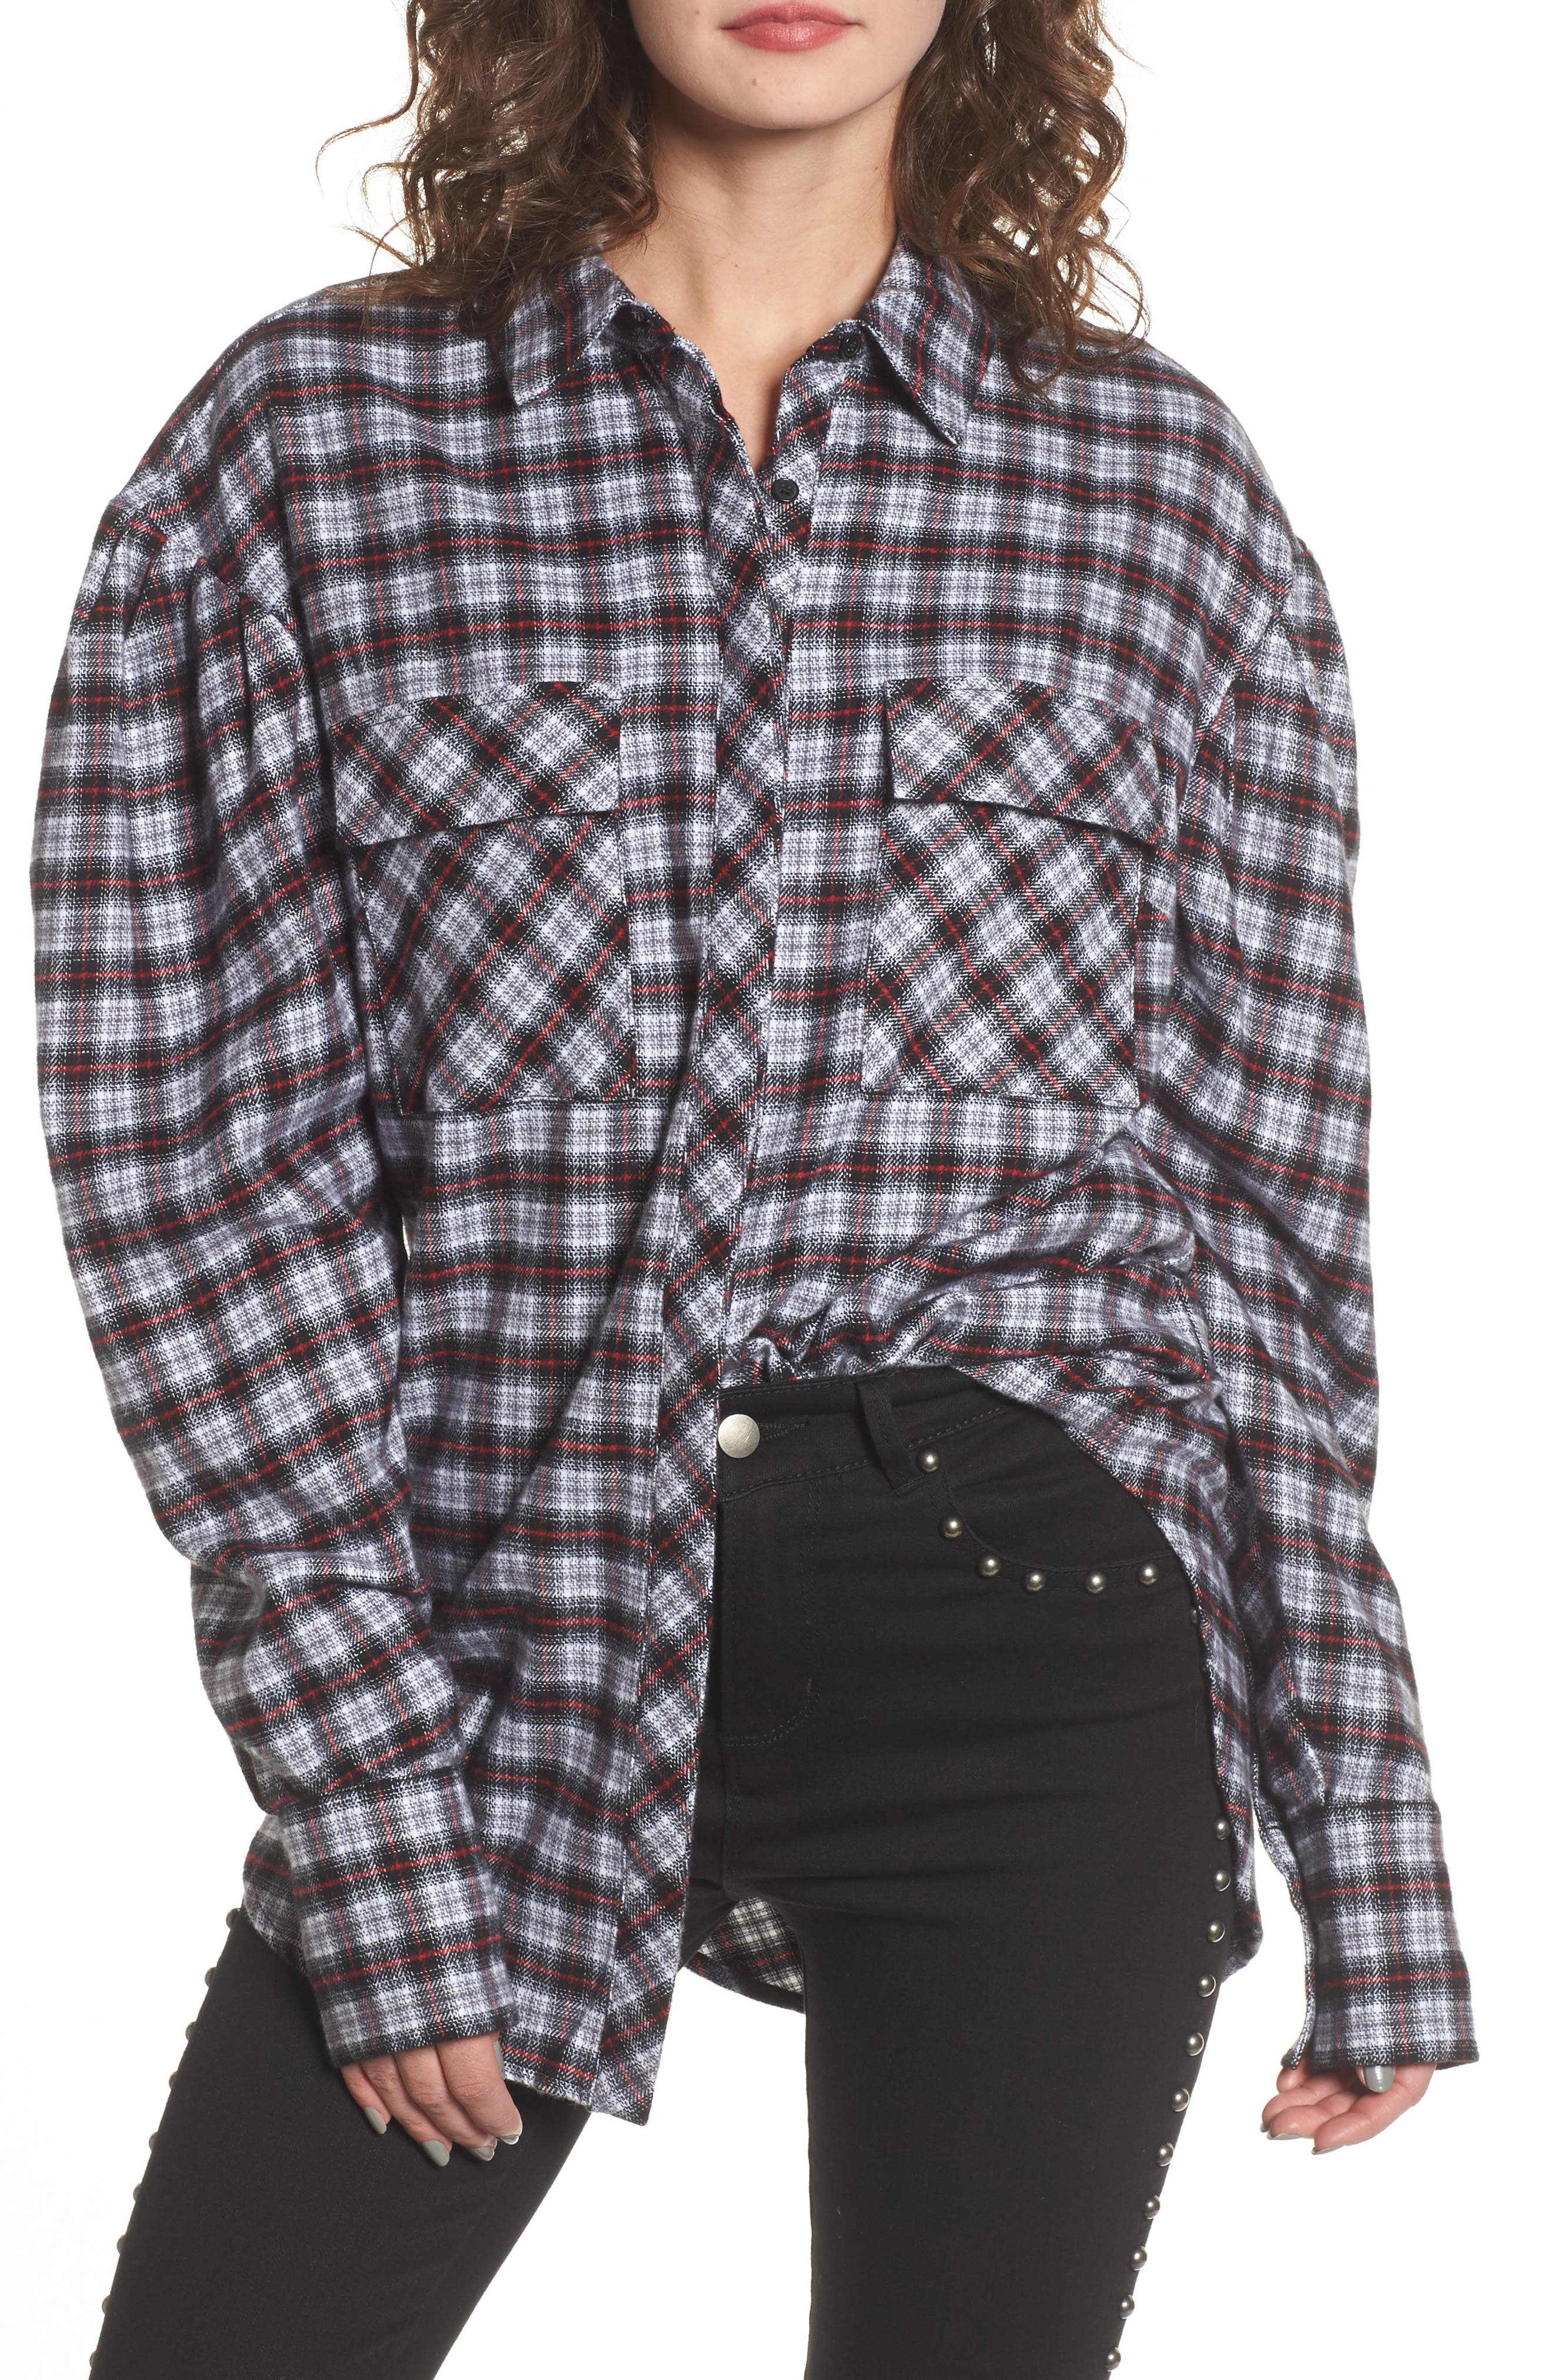 Victoria Oversize Flannel Shirt,                             Main thumbnail 1, color,                             001